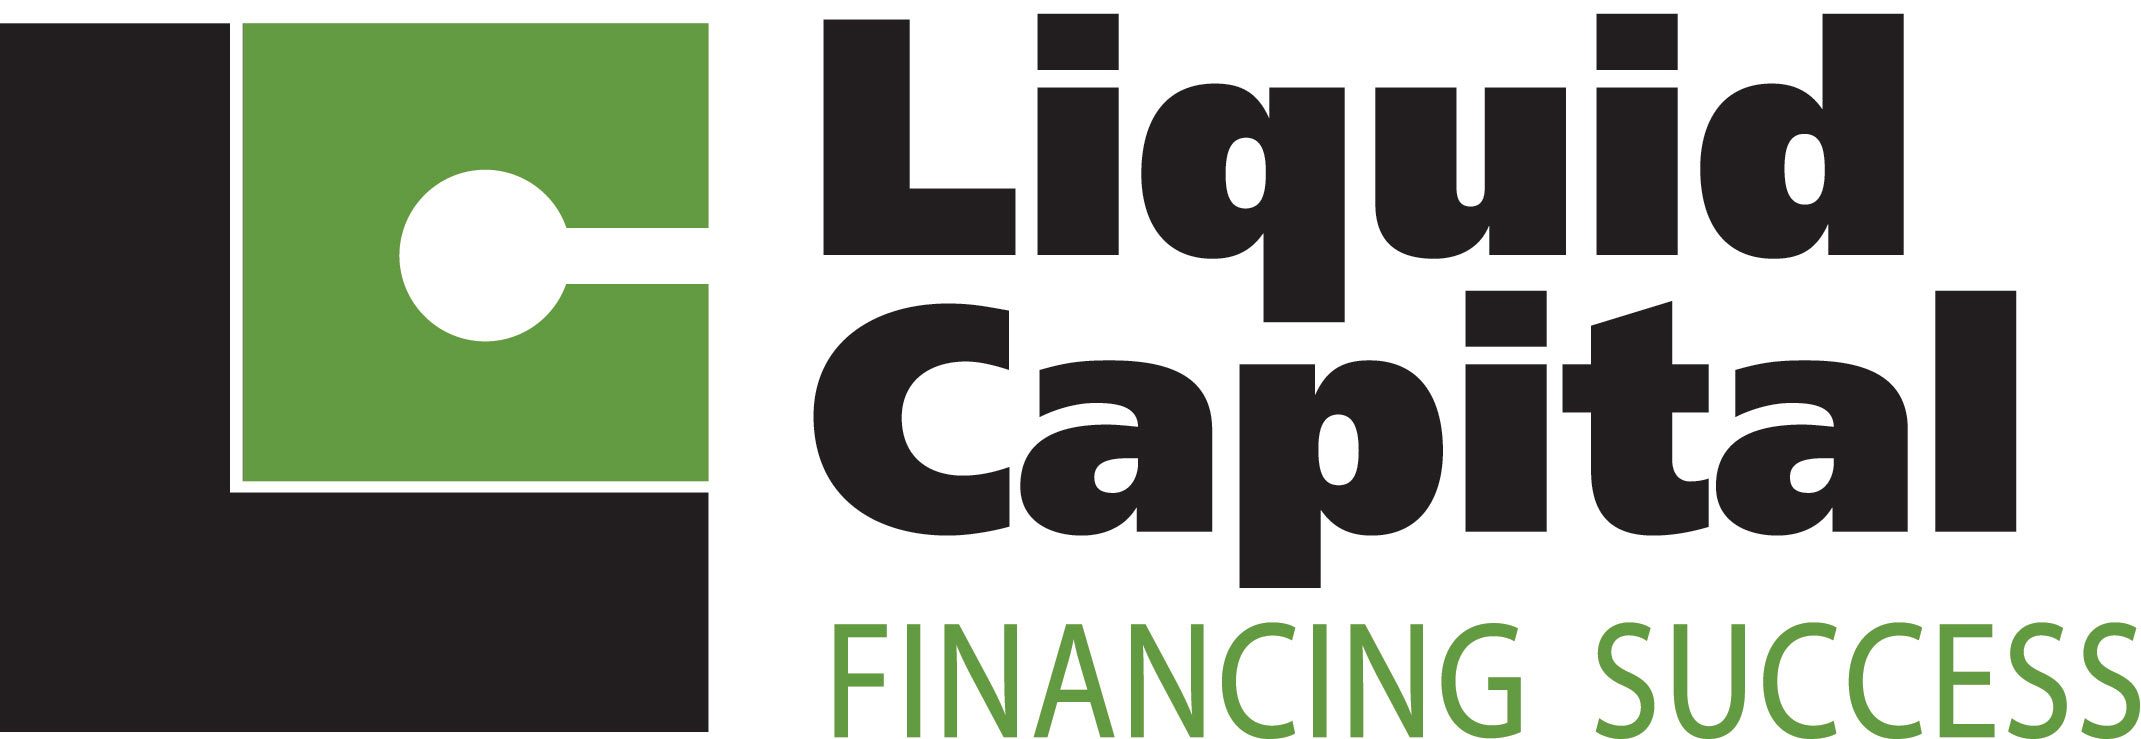 Liquid Capital was named a 2013 World Class Franchise by the Franchise Research Institute.